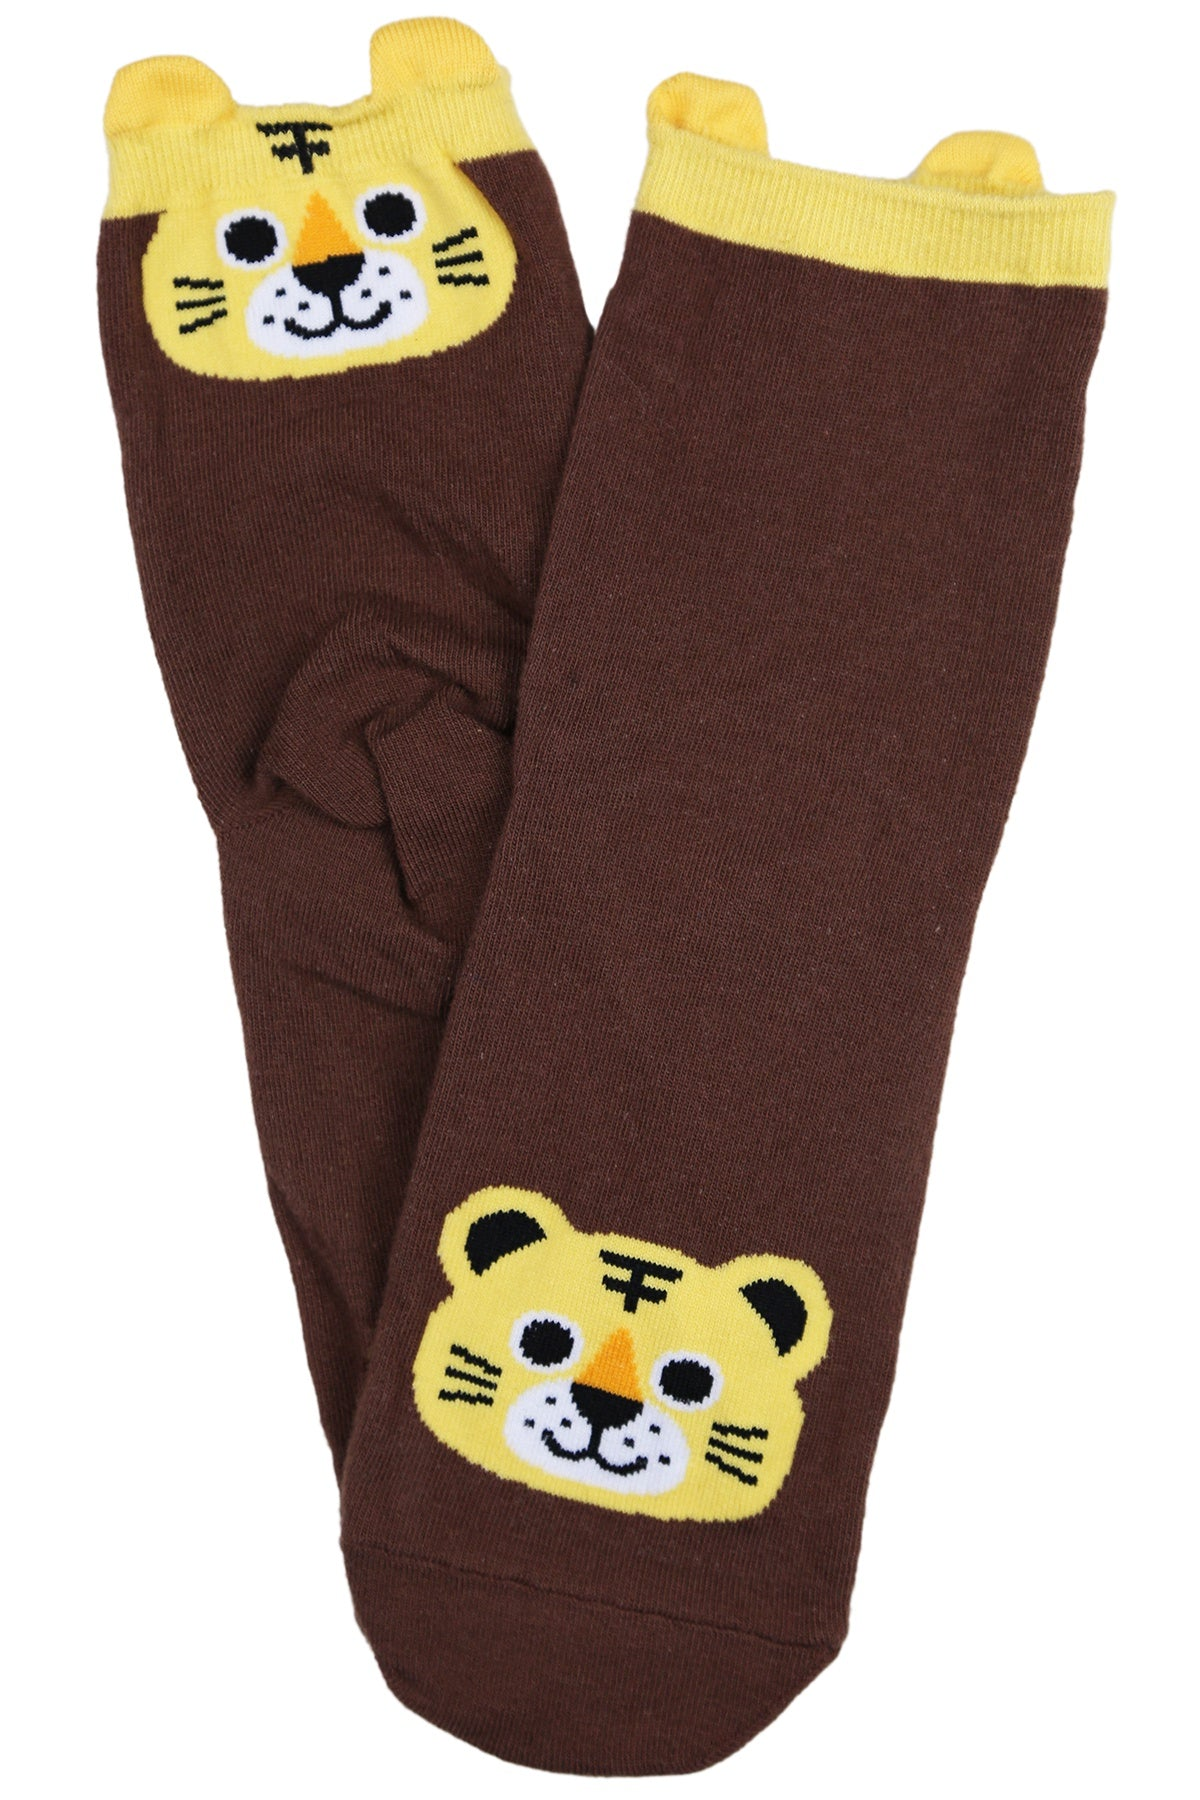 Terry the Tiger Cotton Socks